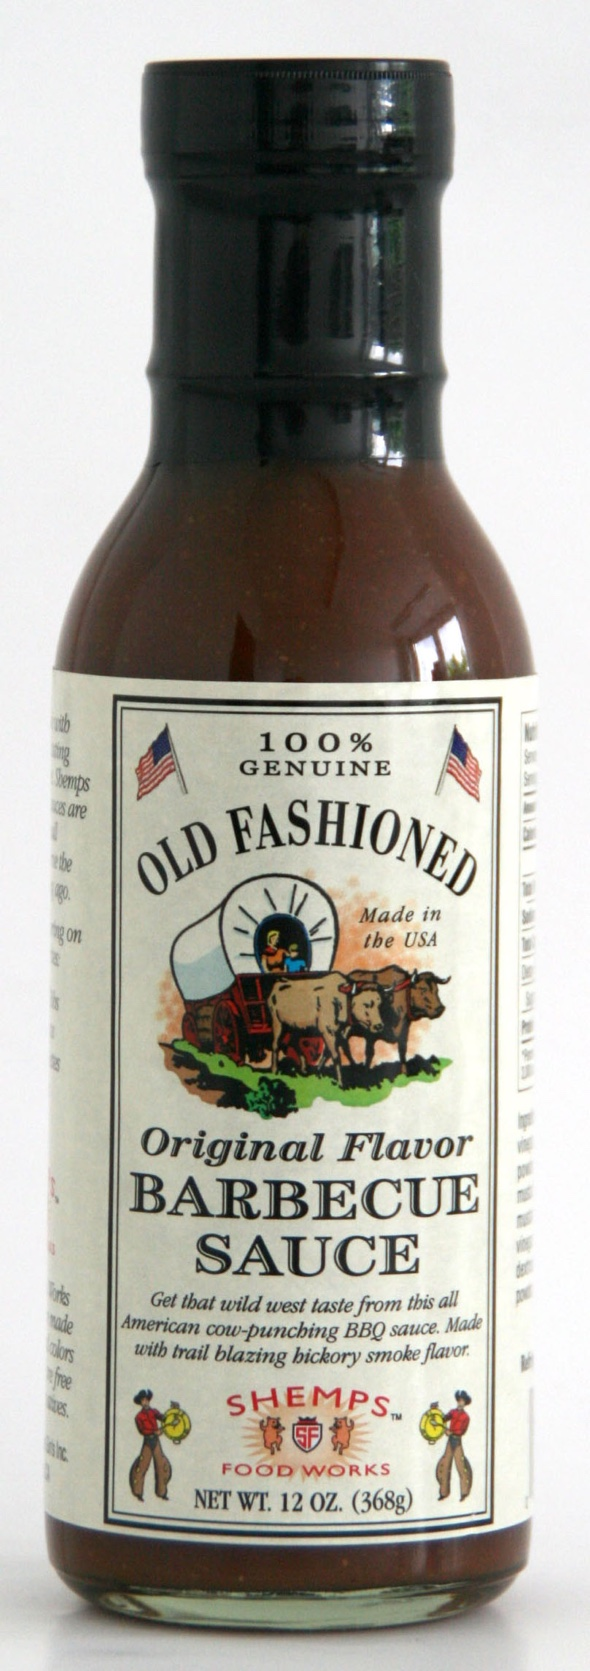 S1849 - Original Flavour Barbecue Sauce 368 g - Shemps Food Works